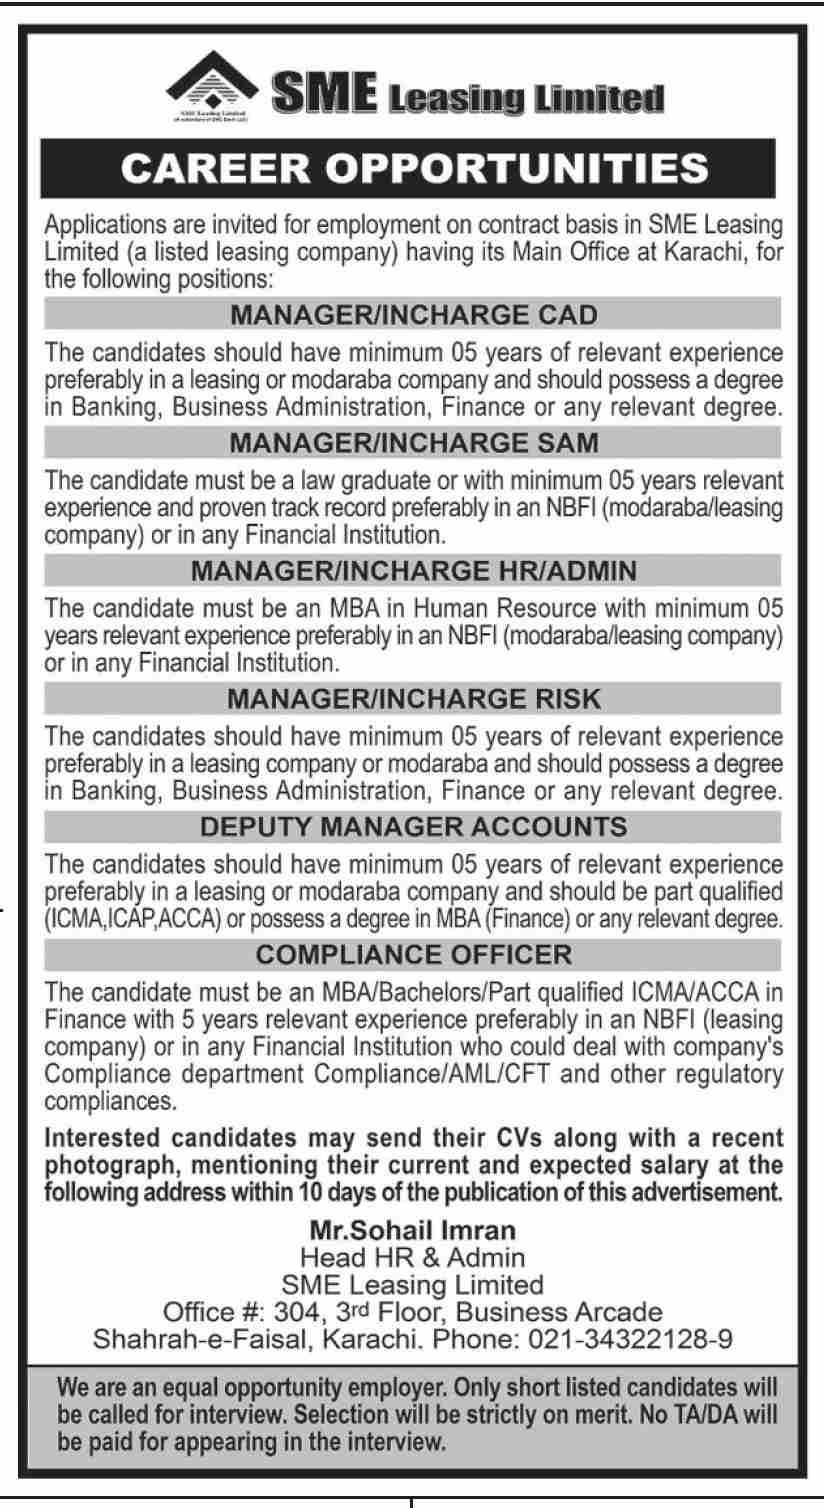 Jobs in Karachi 2021 - SME Leasing Limited Jobs 2021 - Latest Jobs in Pakistan For Male and Female